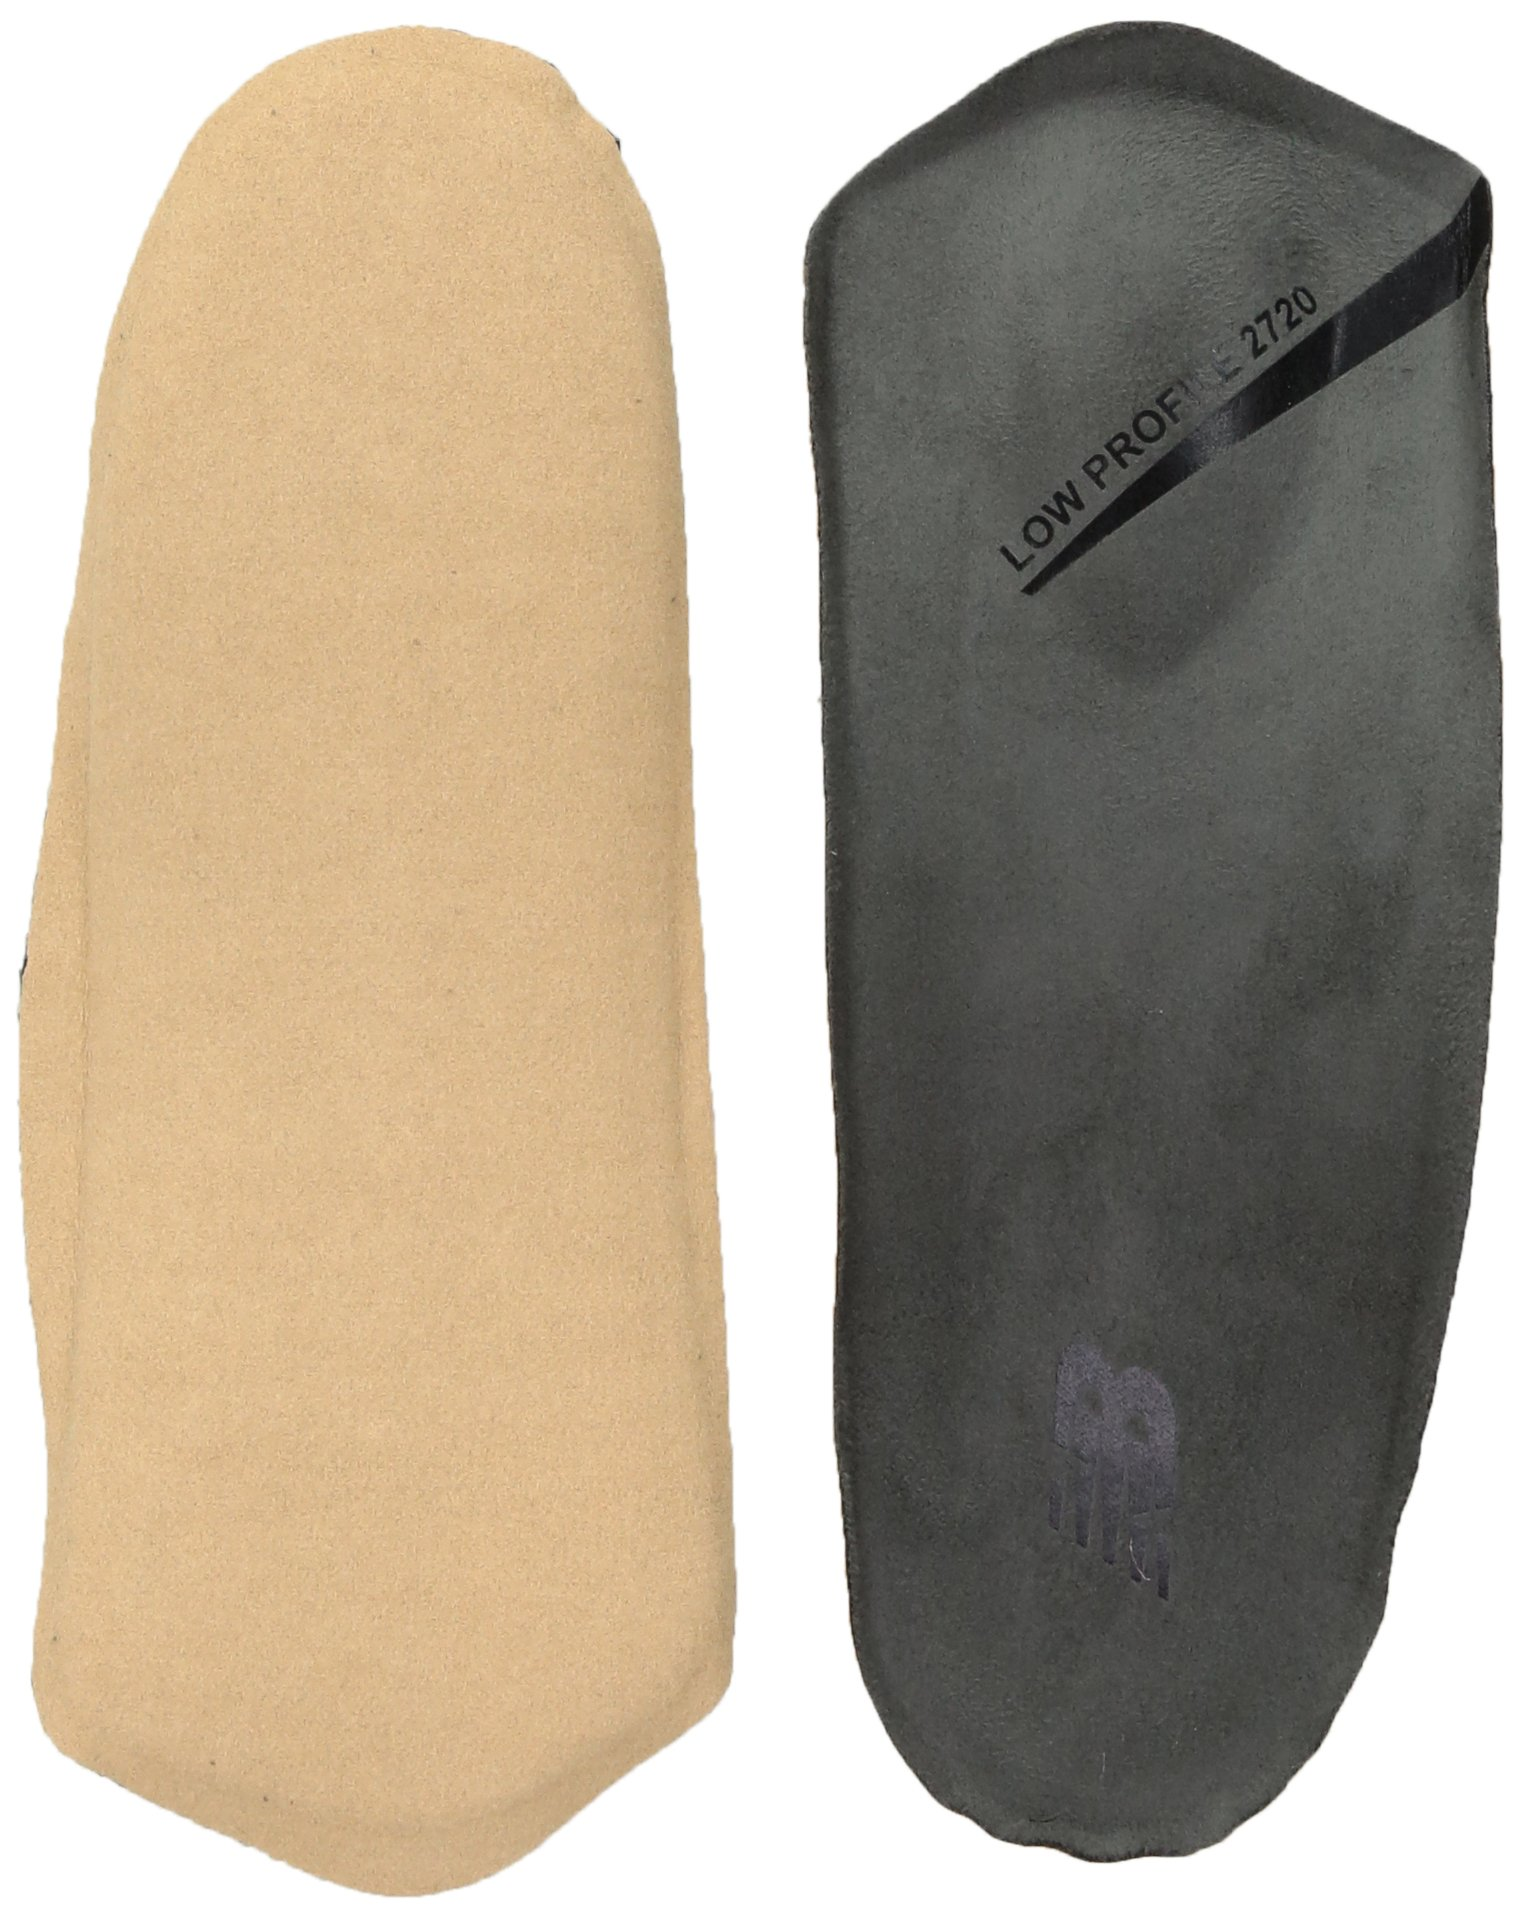 8054193e4e4c9 New Balance Insoles 2720 3/4 Low Profile with Med Pad Shoe Insoles grey  Medium/M 10-11 D US